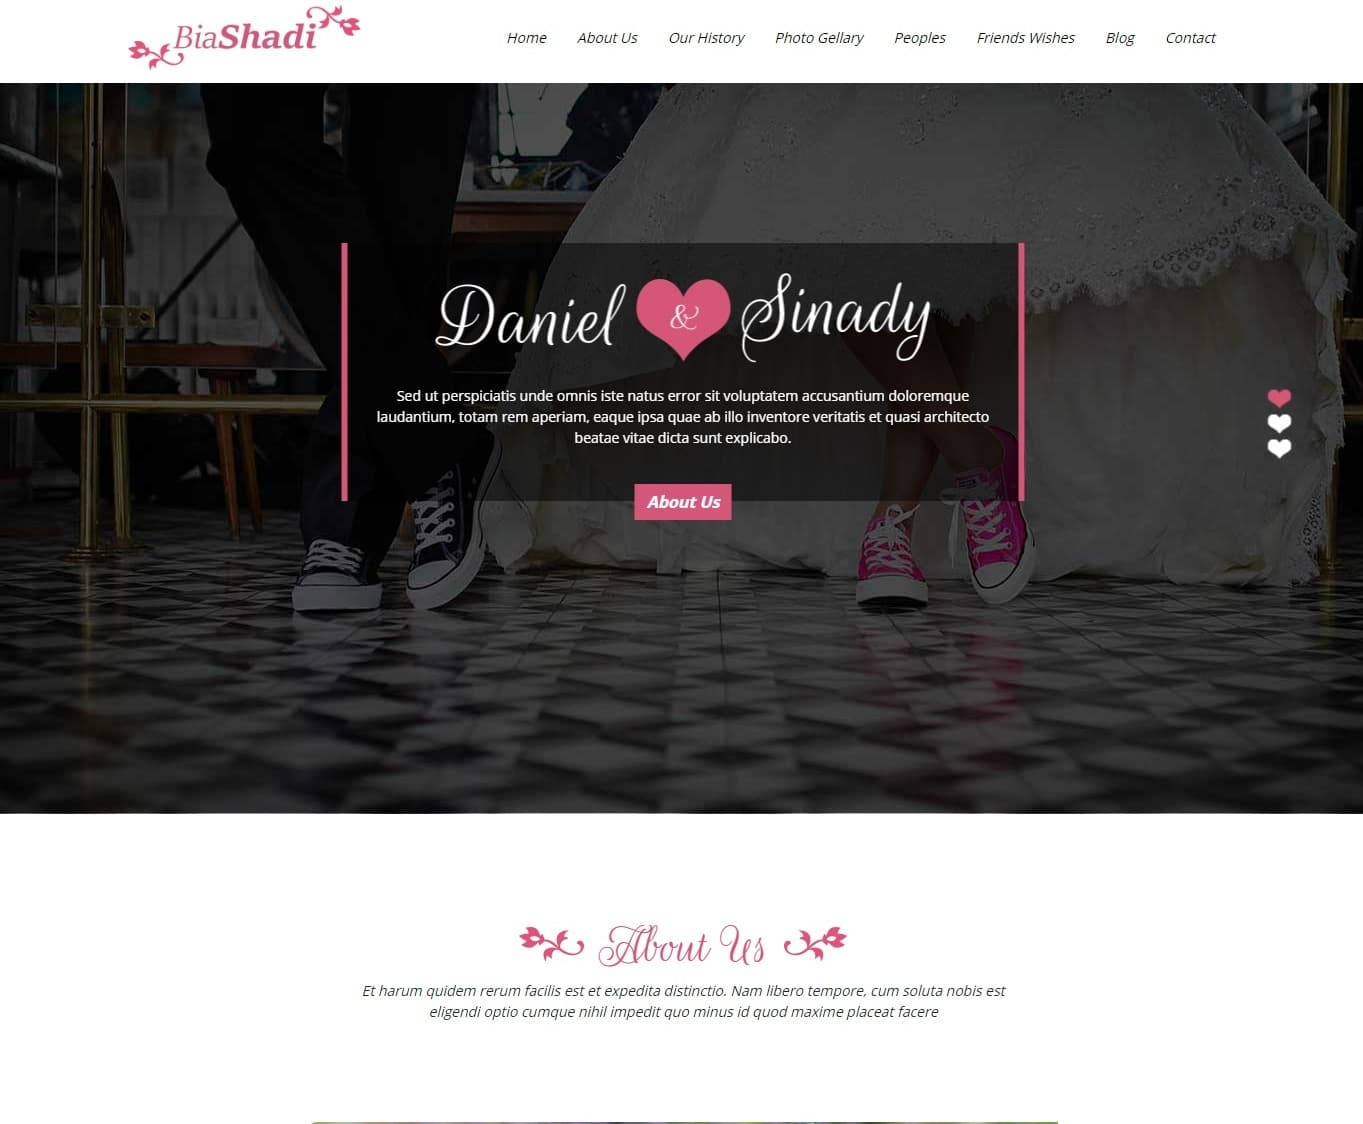 biashadi-free-wedding-website-template